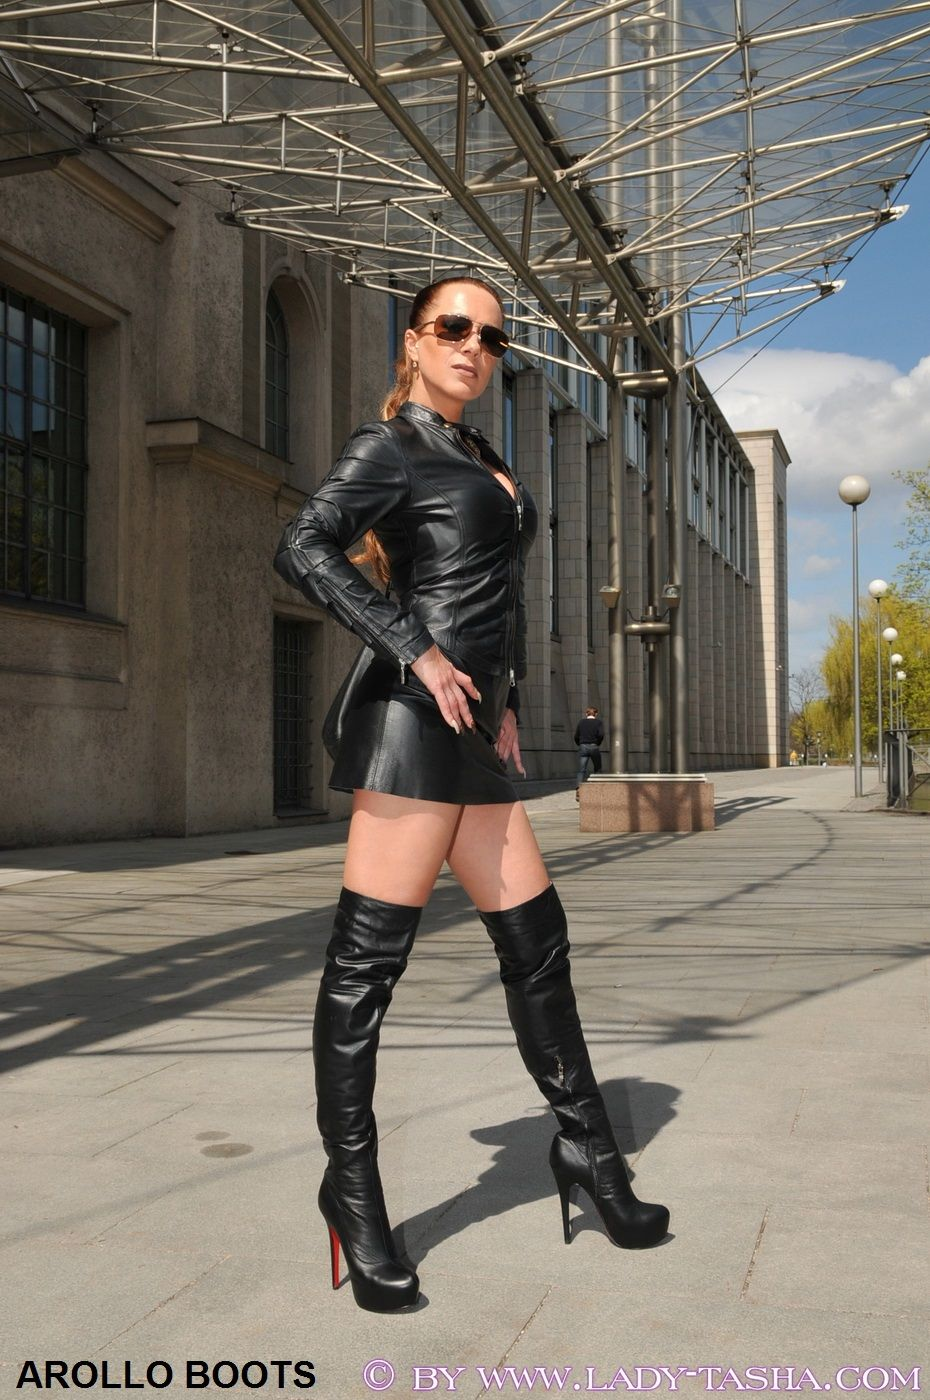 Boots Arollo Overknee Princess Tasha In Lady jA54LR